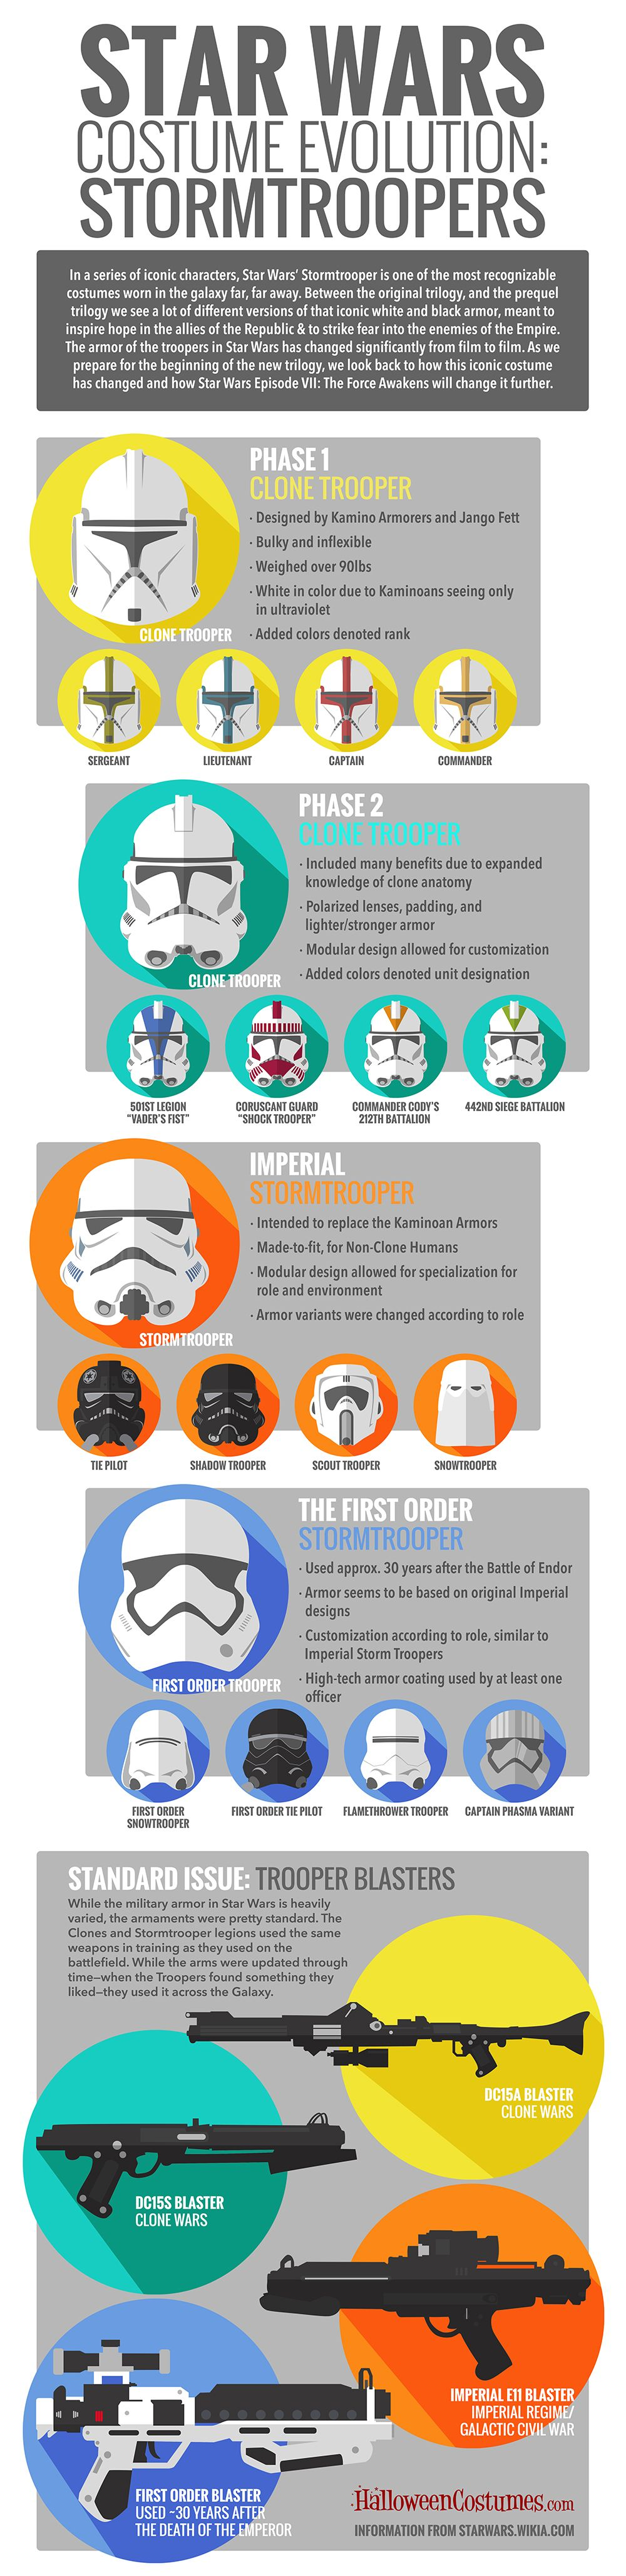 Star Wars Costume Evolution Stormtrooper